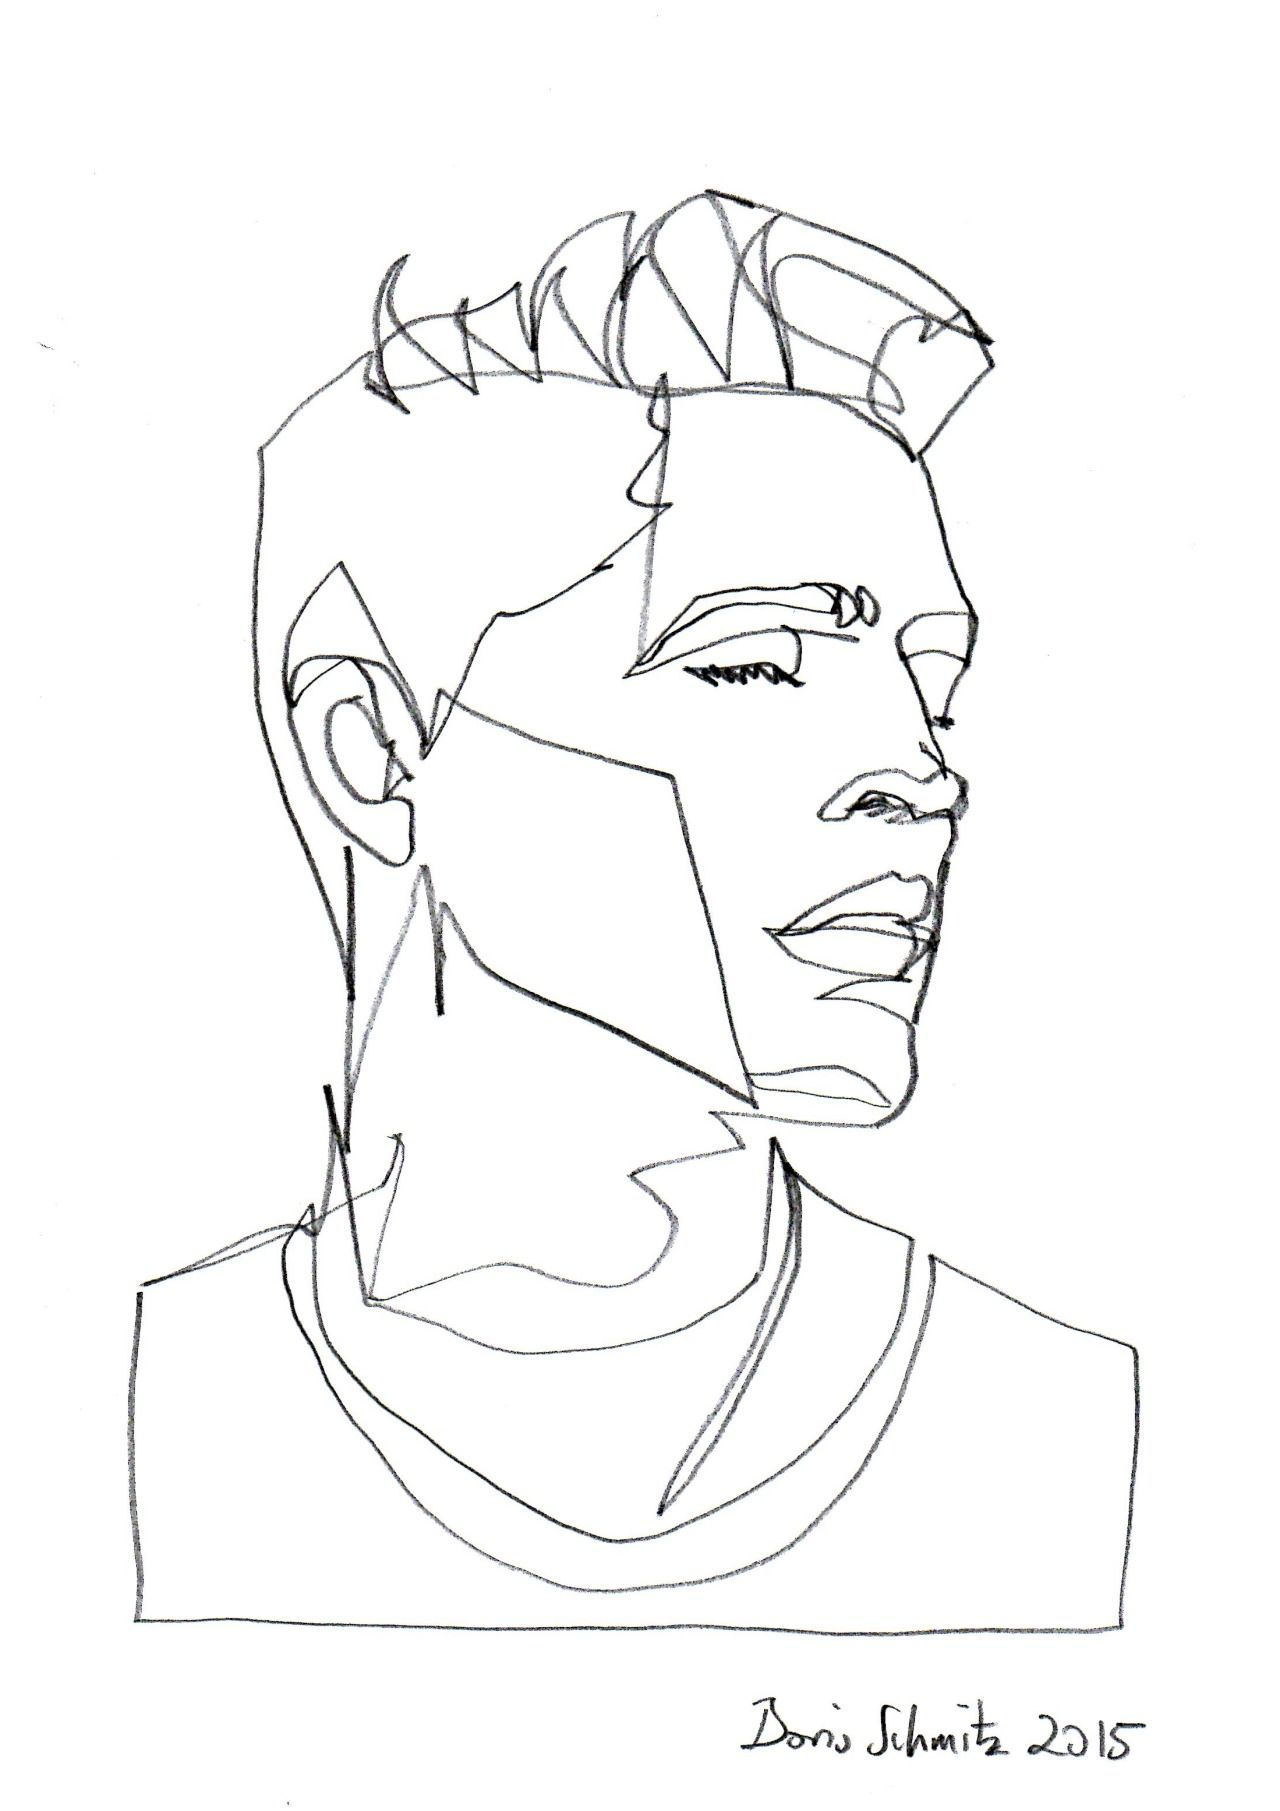 Single Line Artwork : Borisschmitz quot gaze one continuous line drawing by